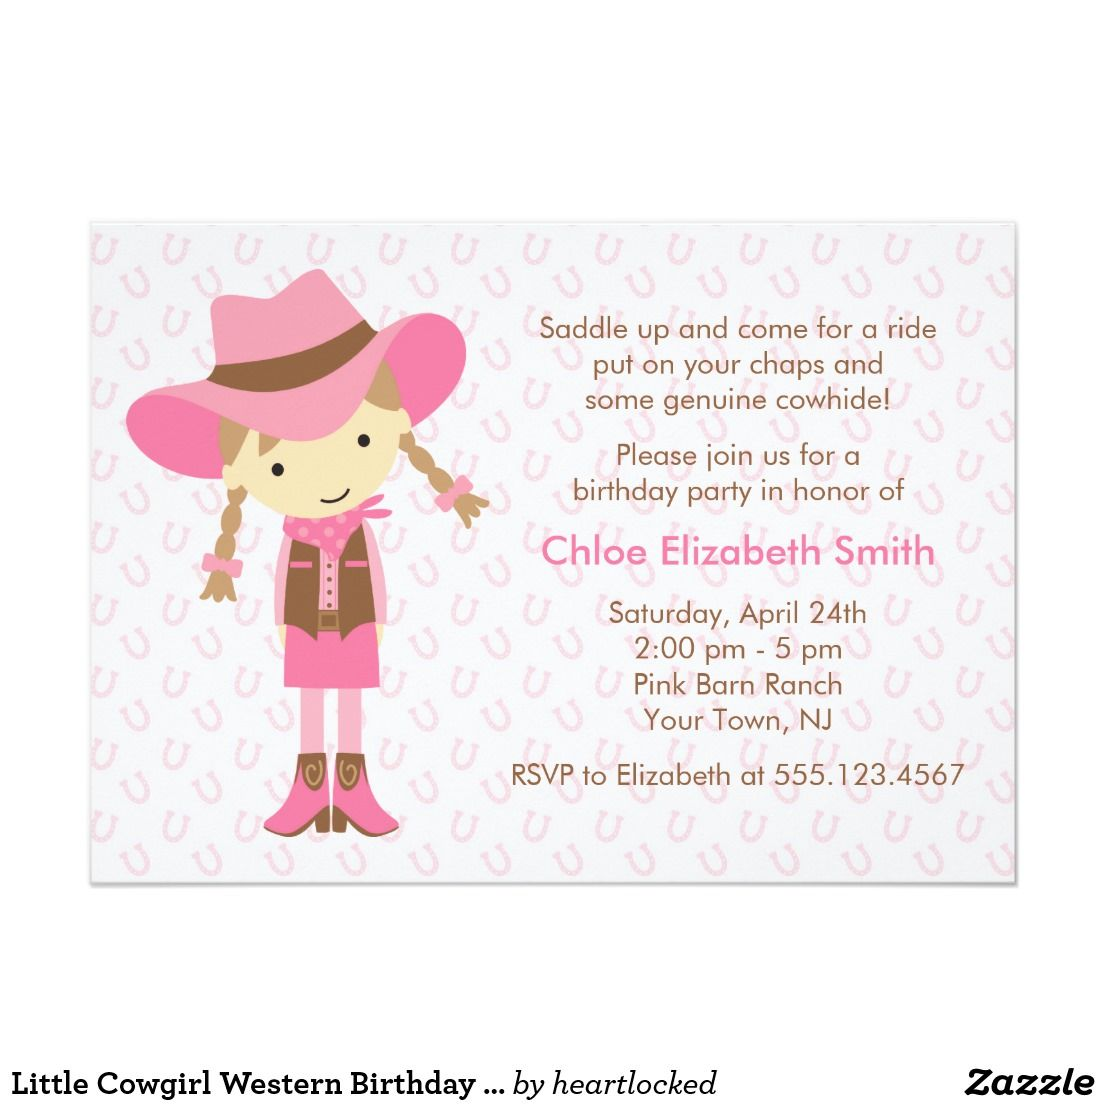 Little Cowgirl Western Birthday Party Card   Cowgirl birthday, Party ...